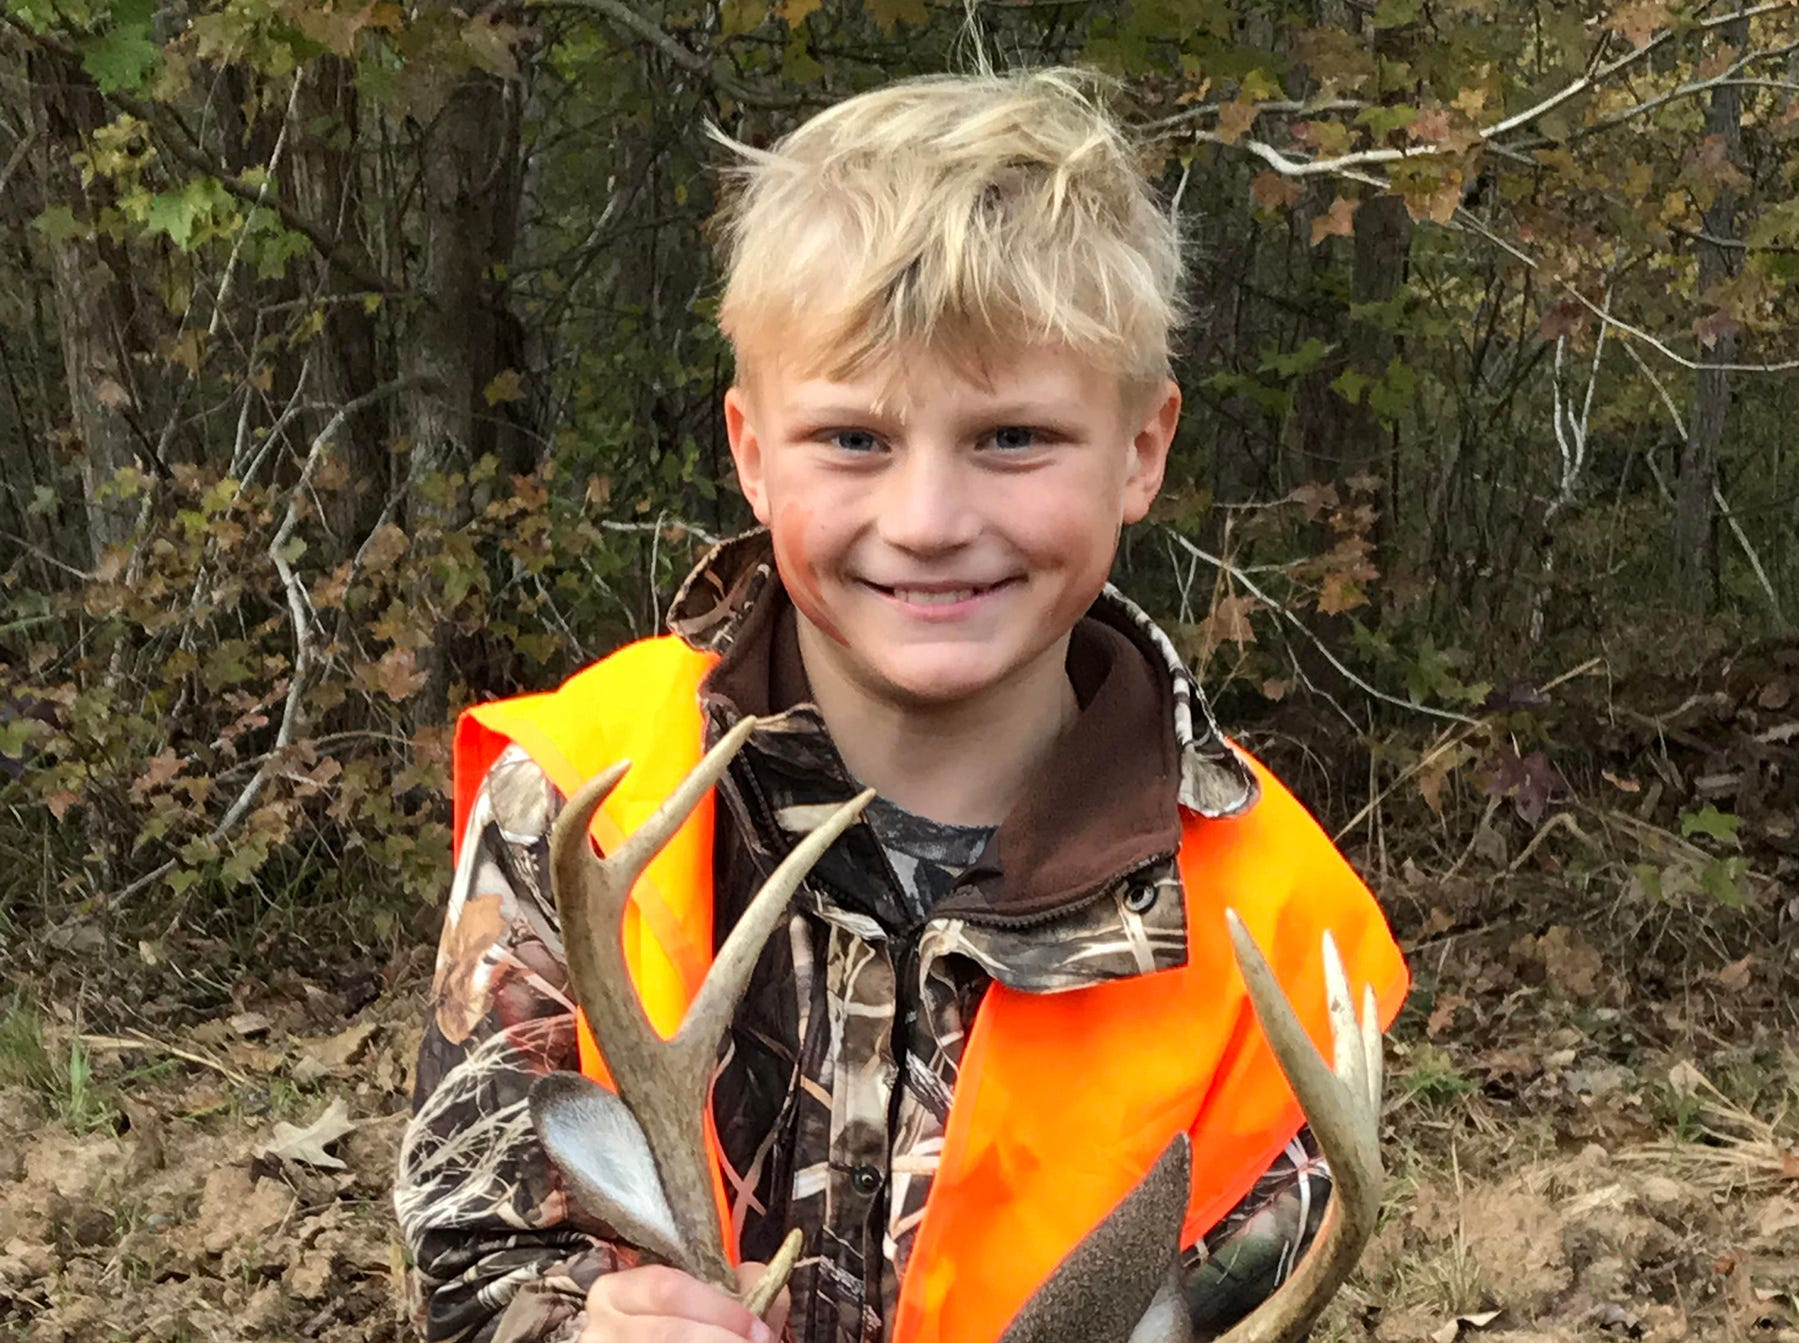 Tristan Jamison, 9, of Vicksburg, harvested a 150-pound 8-point this season.